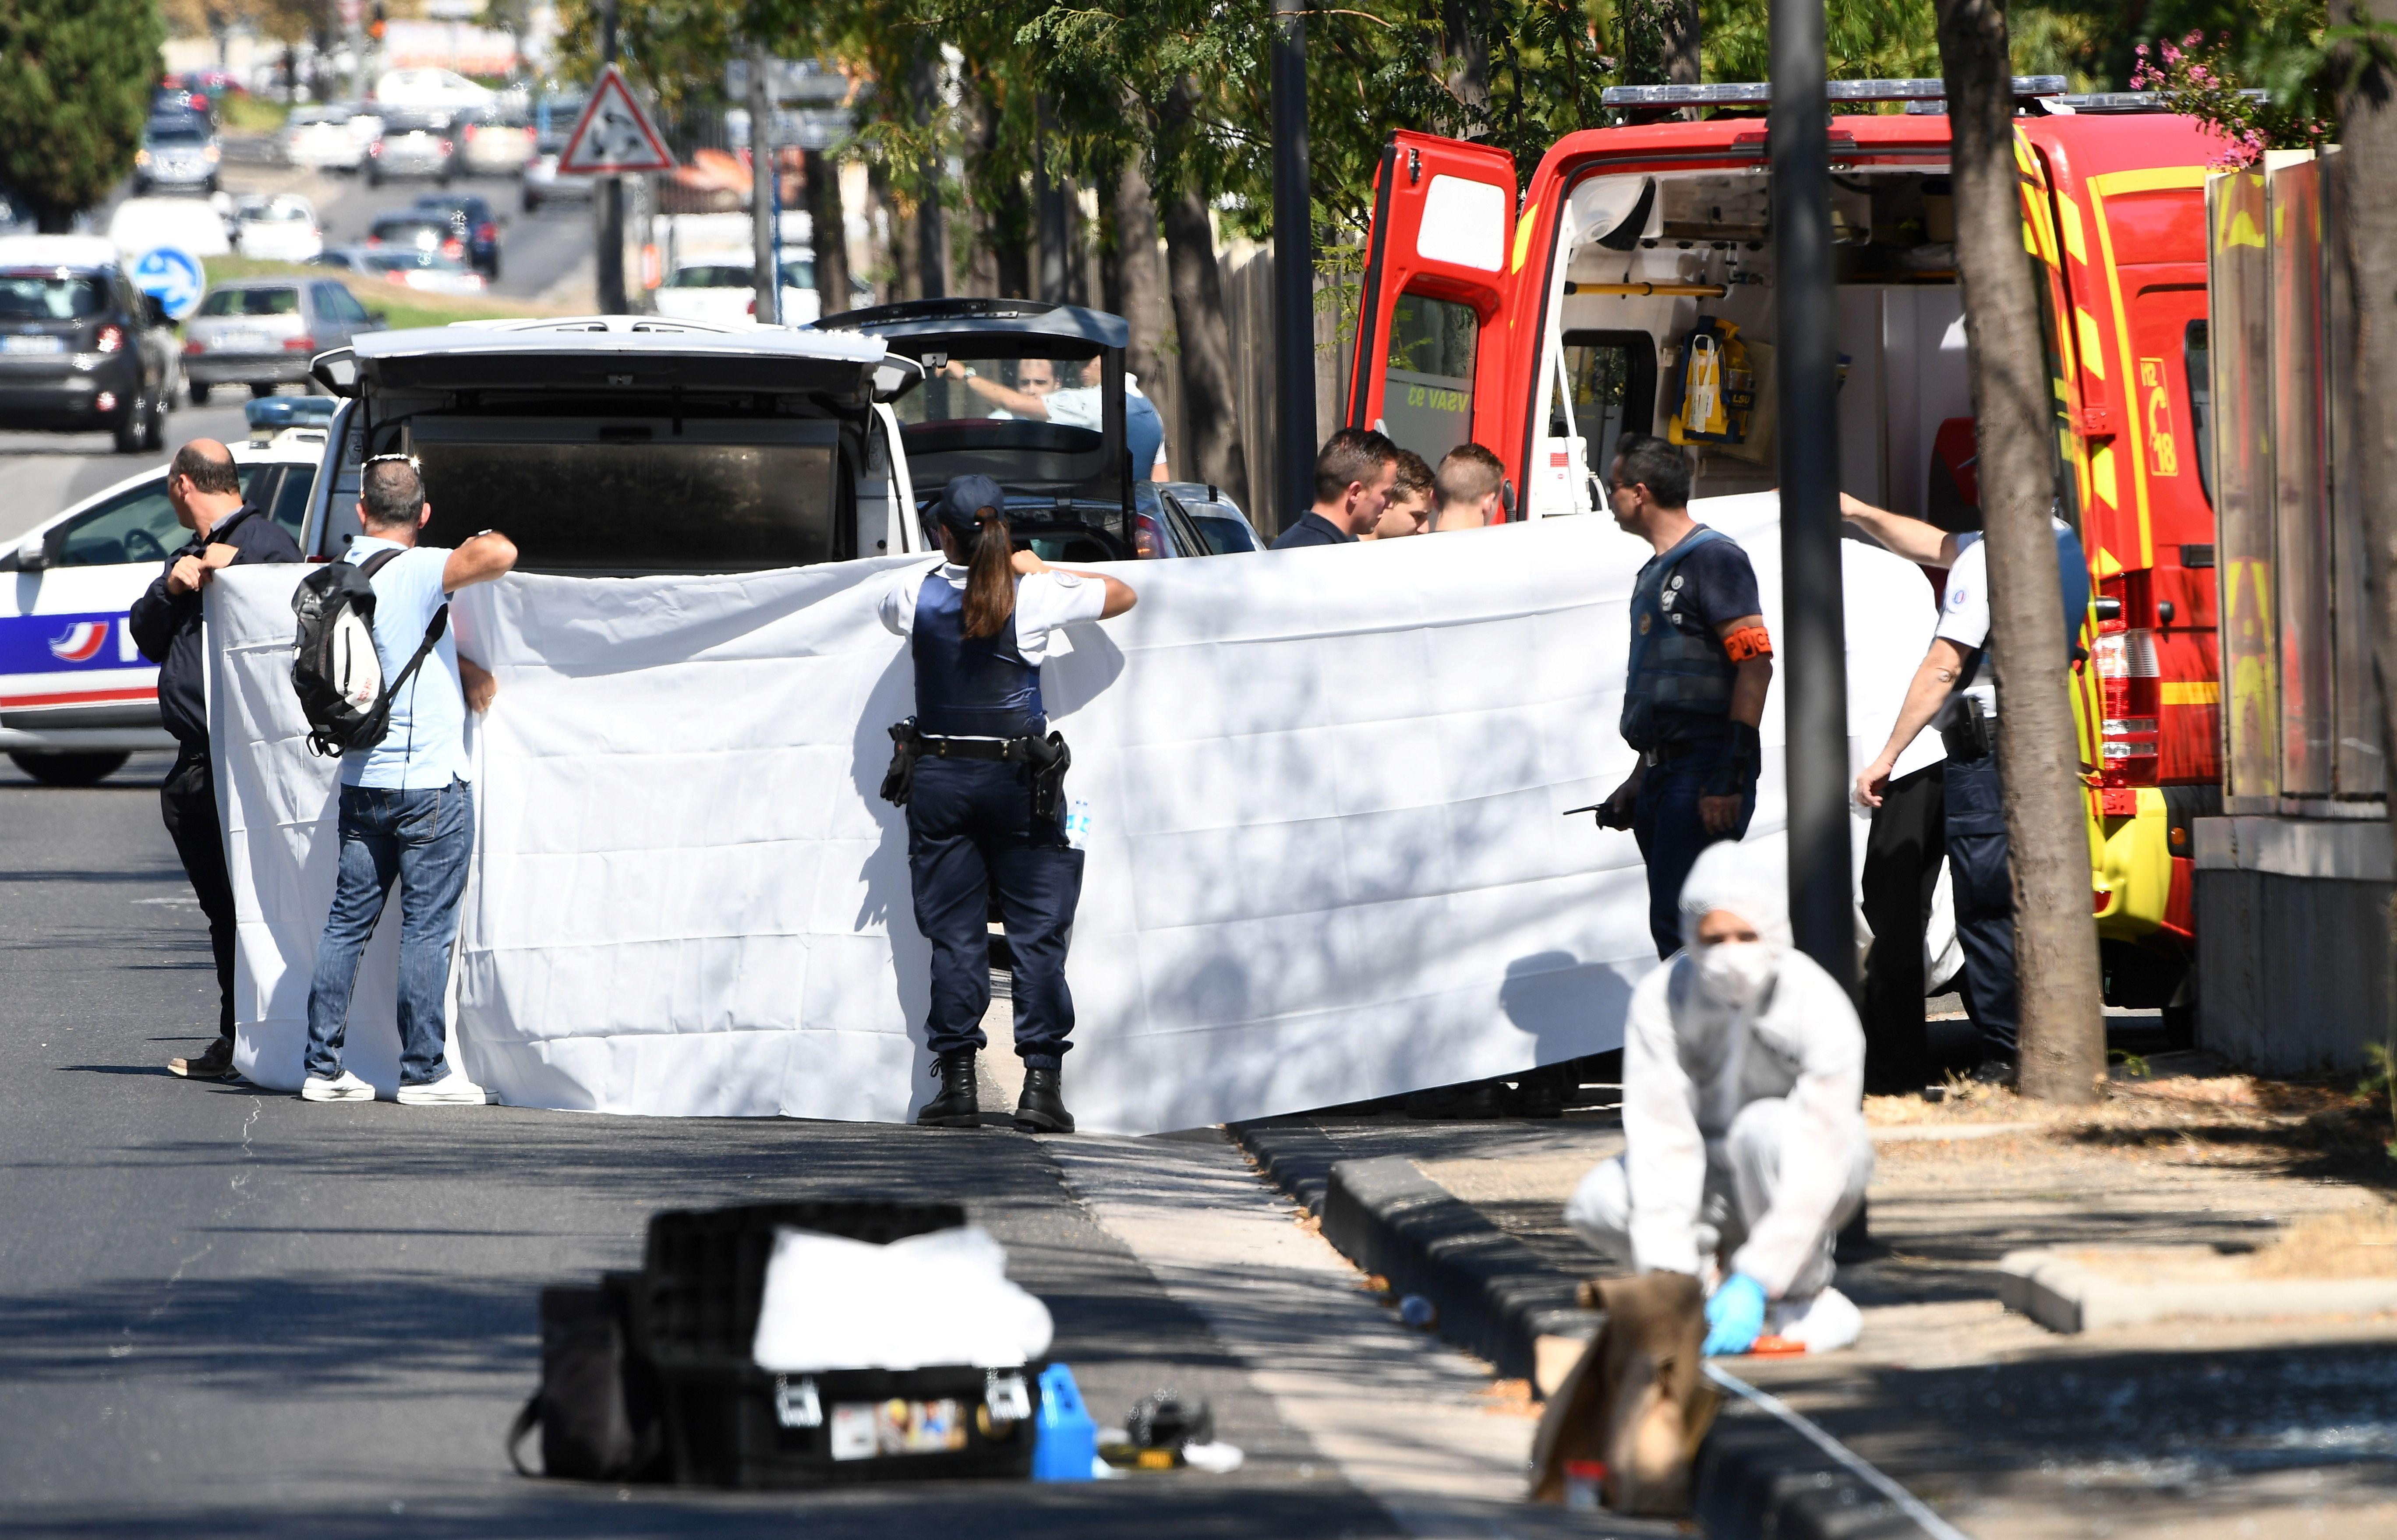 marseille france car crashes into bus shelters reportedly killing one person driver arrested. Black Bedroom Furniture Sets. Home Design Ideas